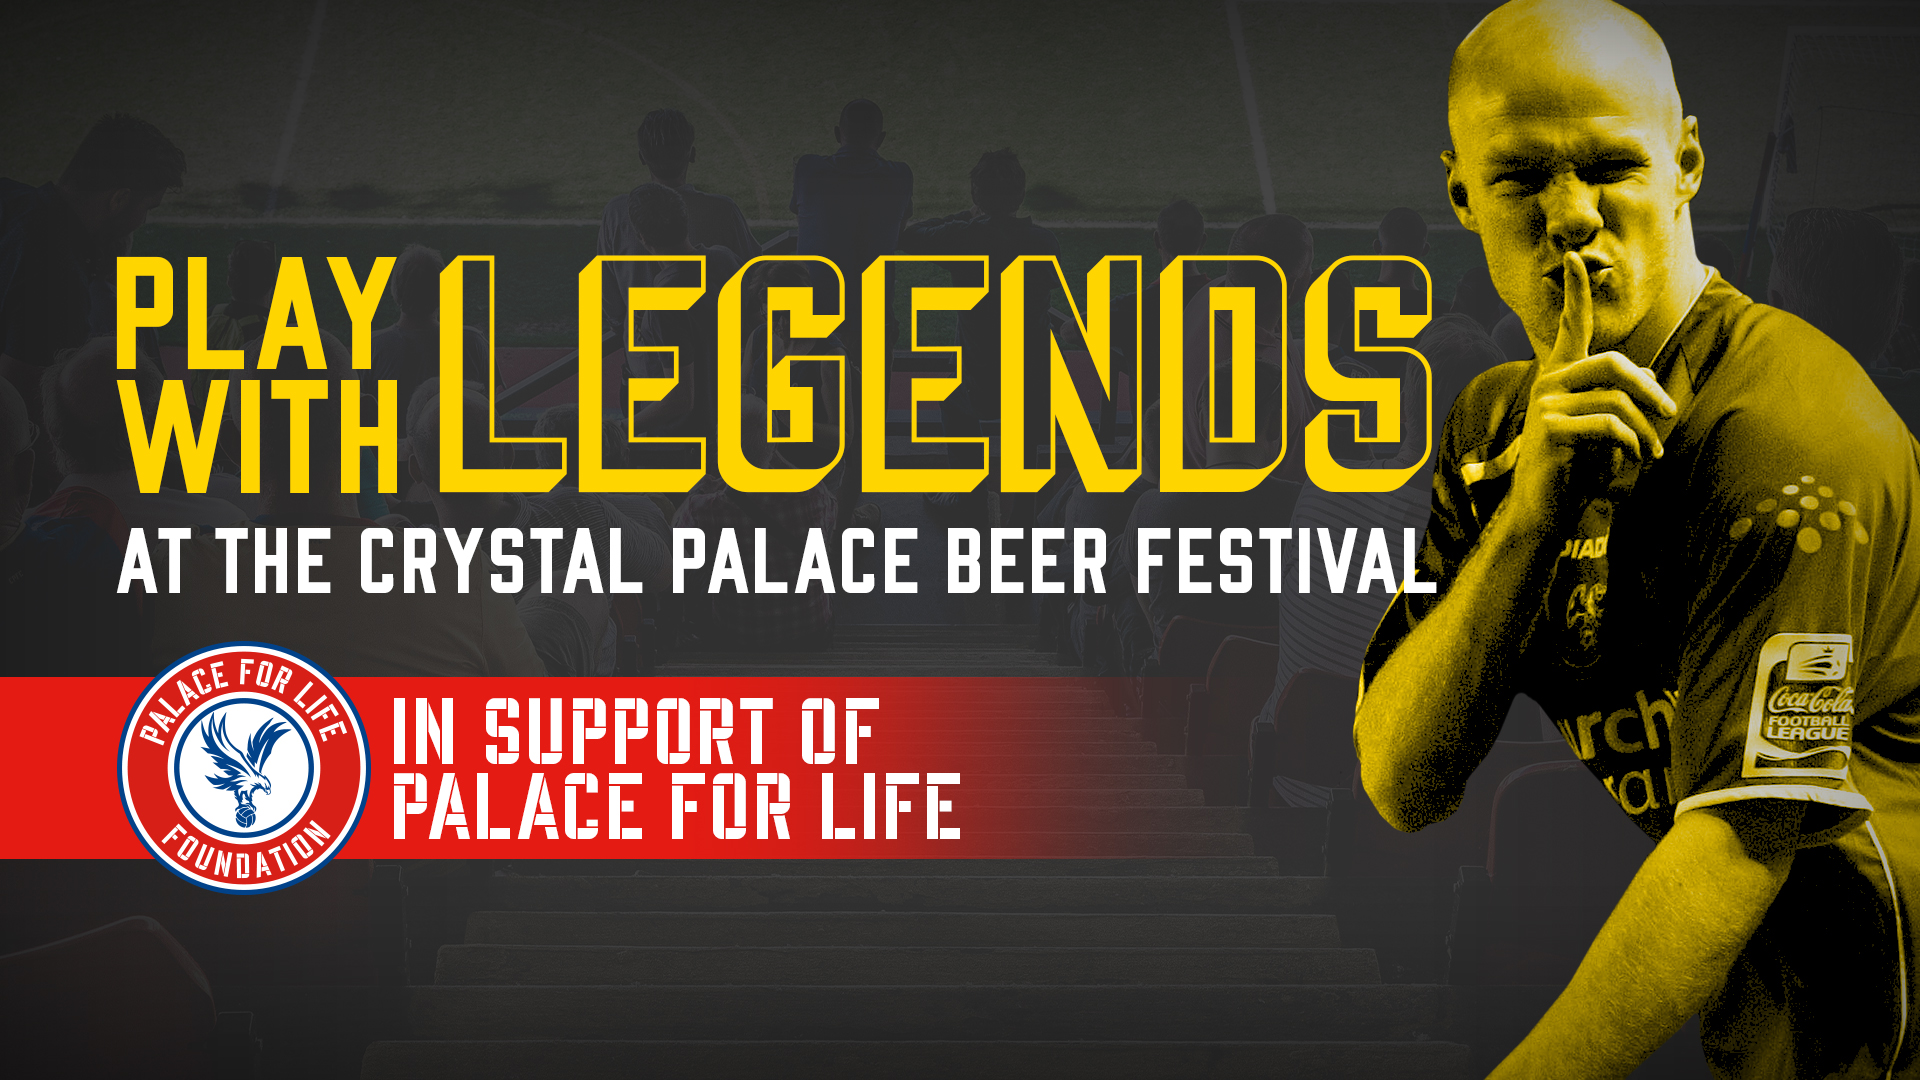 Play with Legends - Save the Date! | Palace for Life Foundation